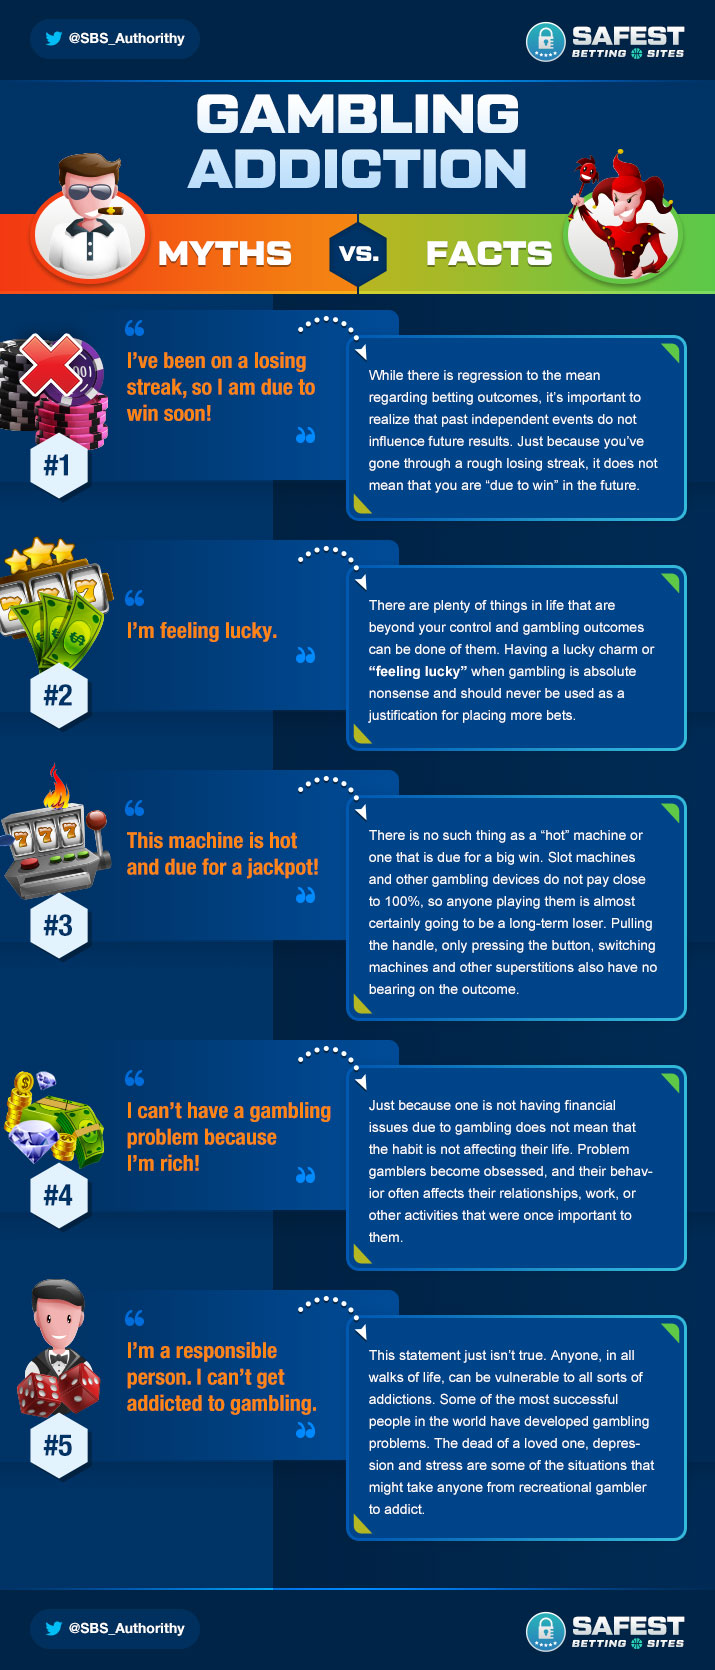 Gambling Addiction Myths Vs Facts Infographic 2019